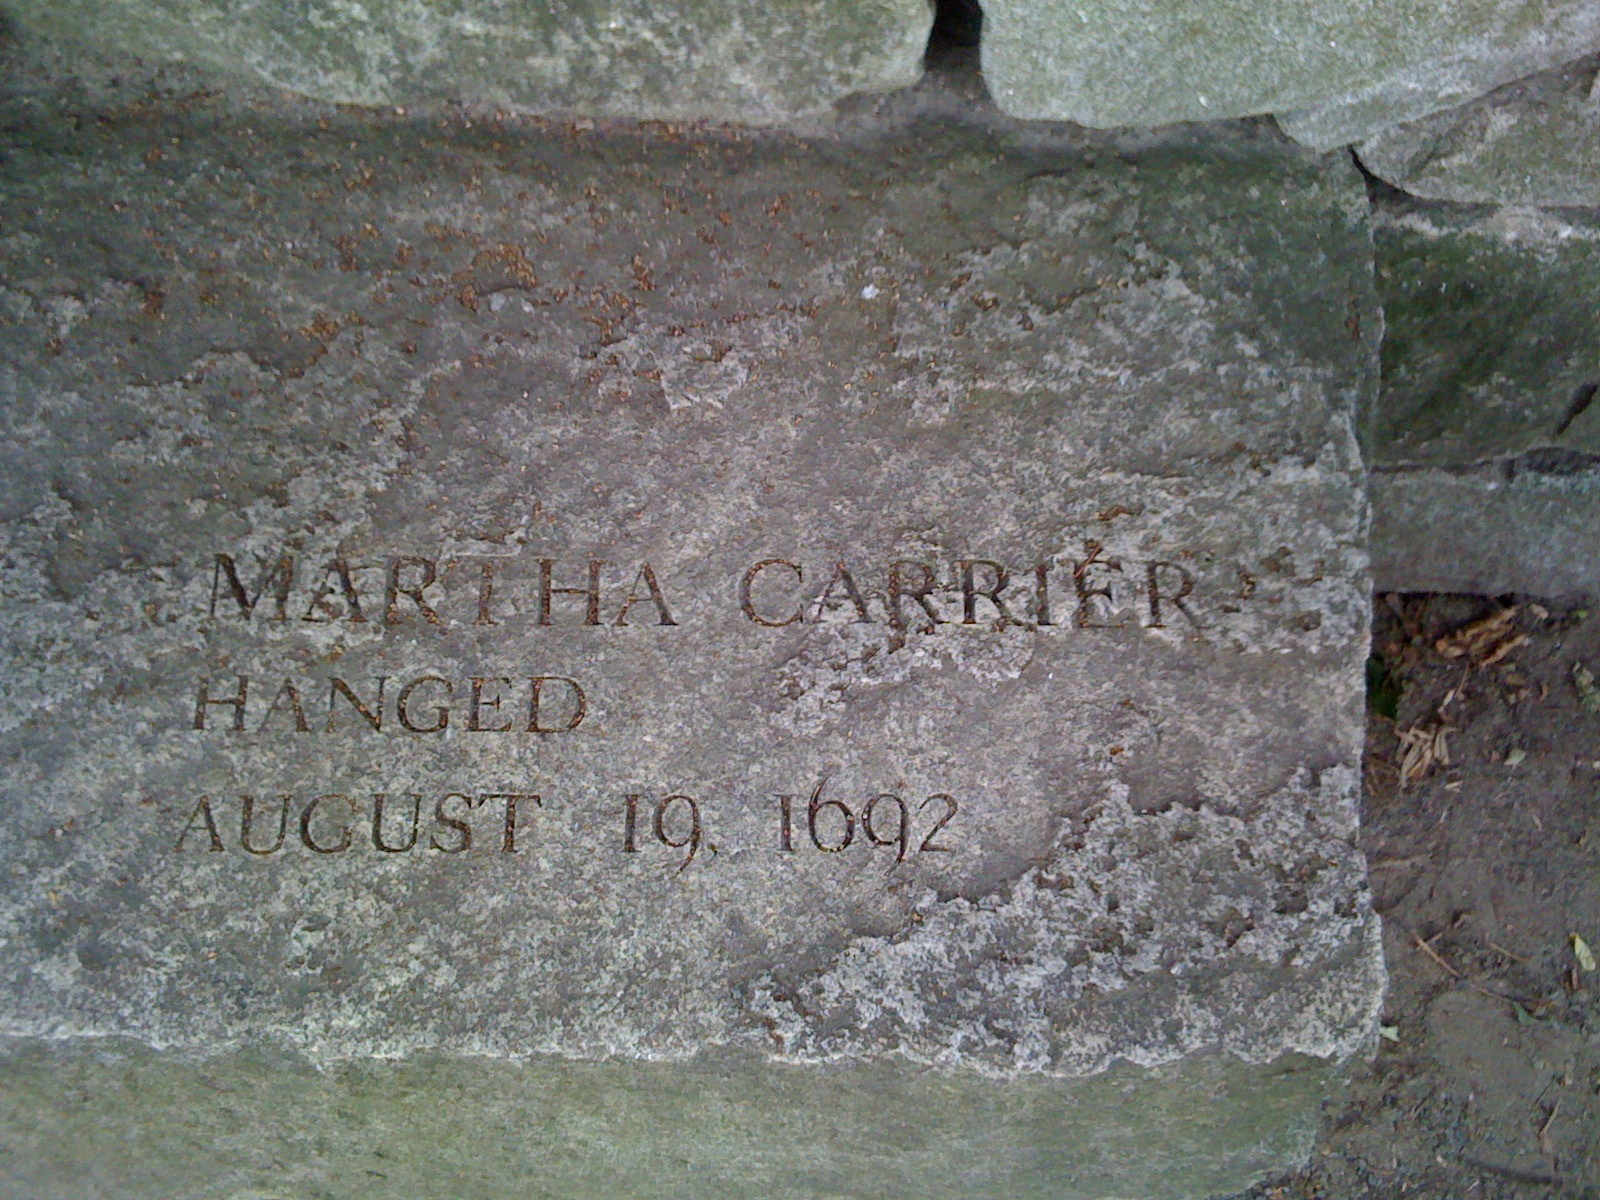 Martha Carrier